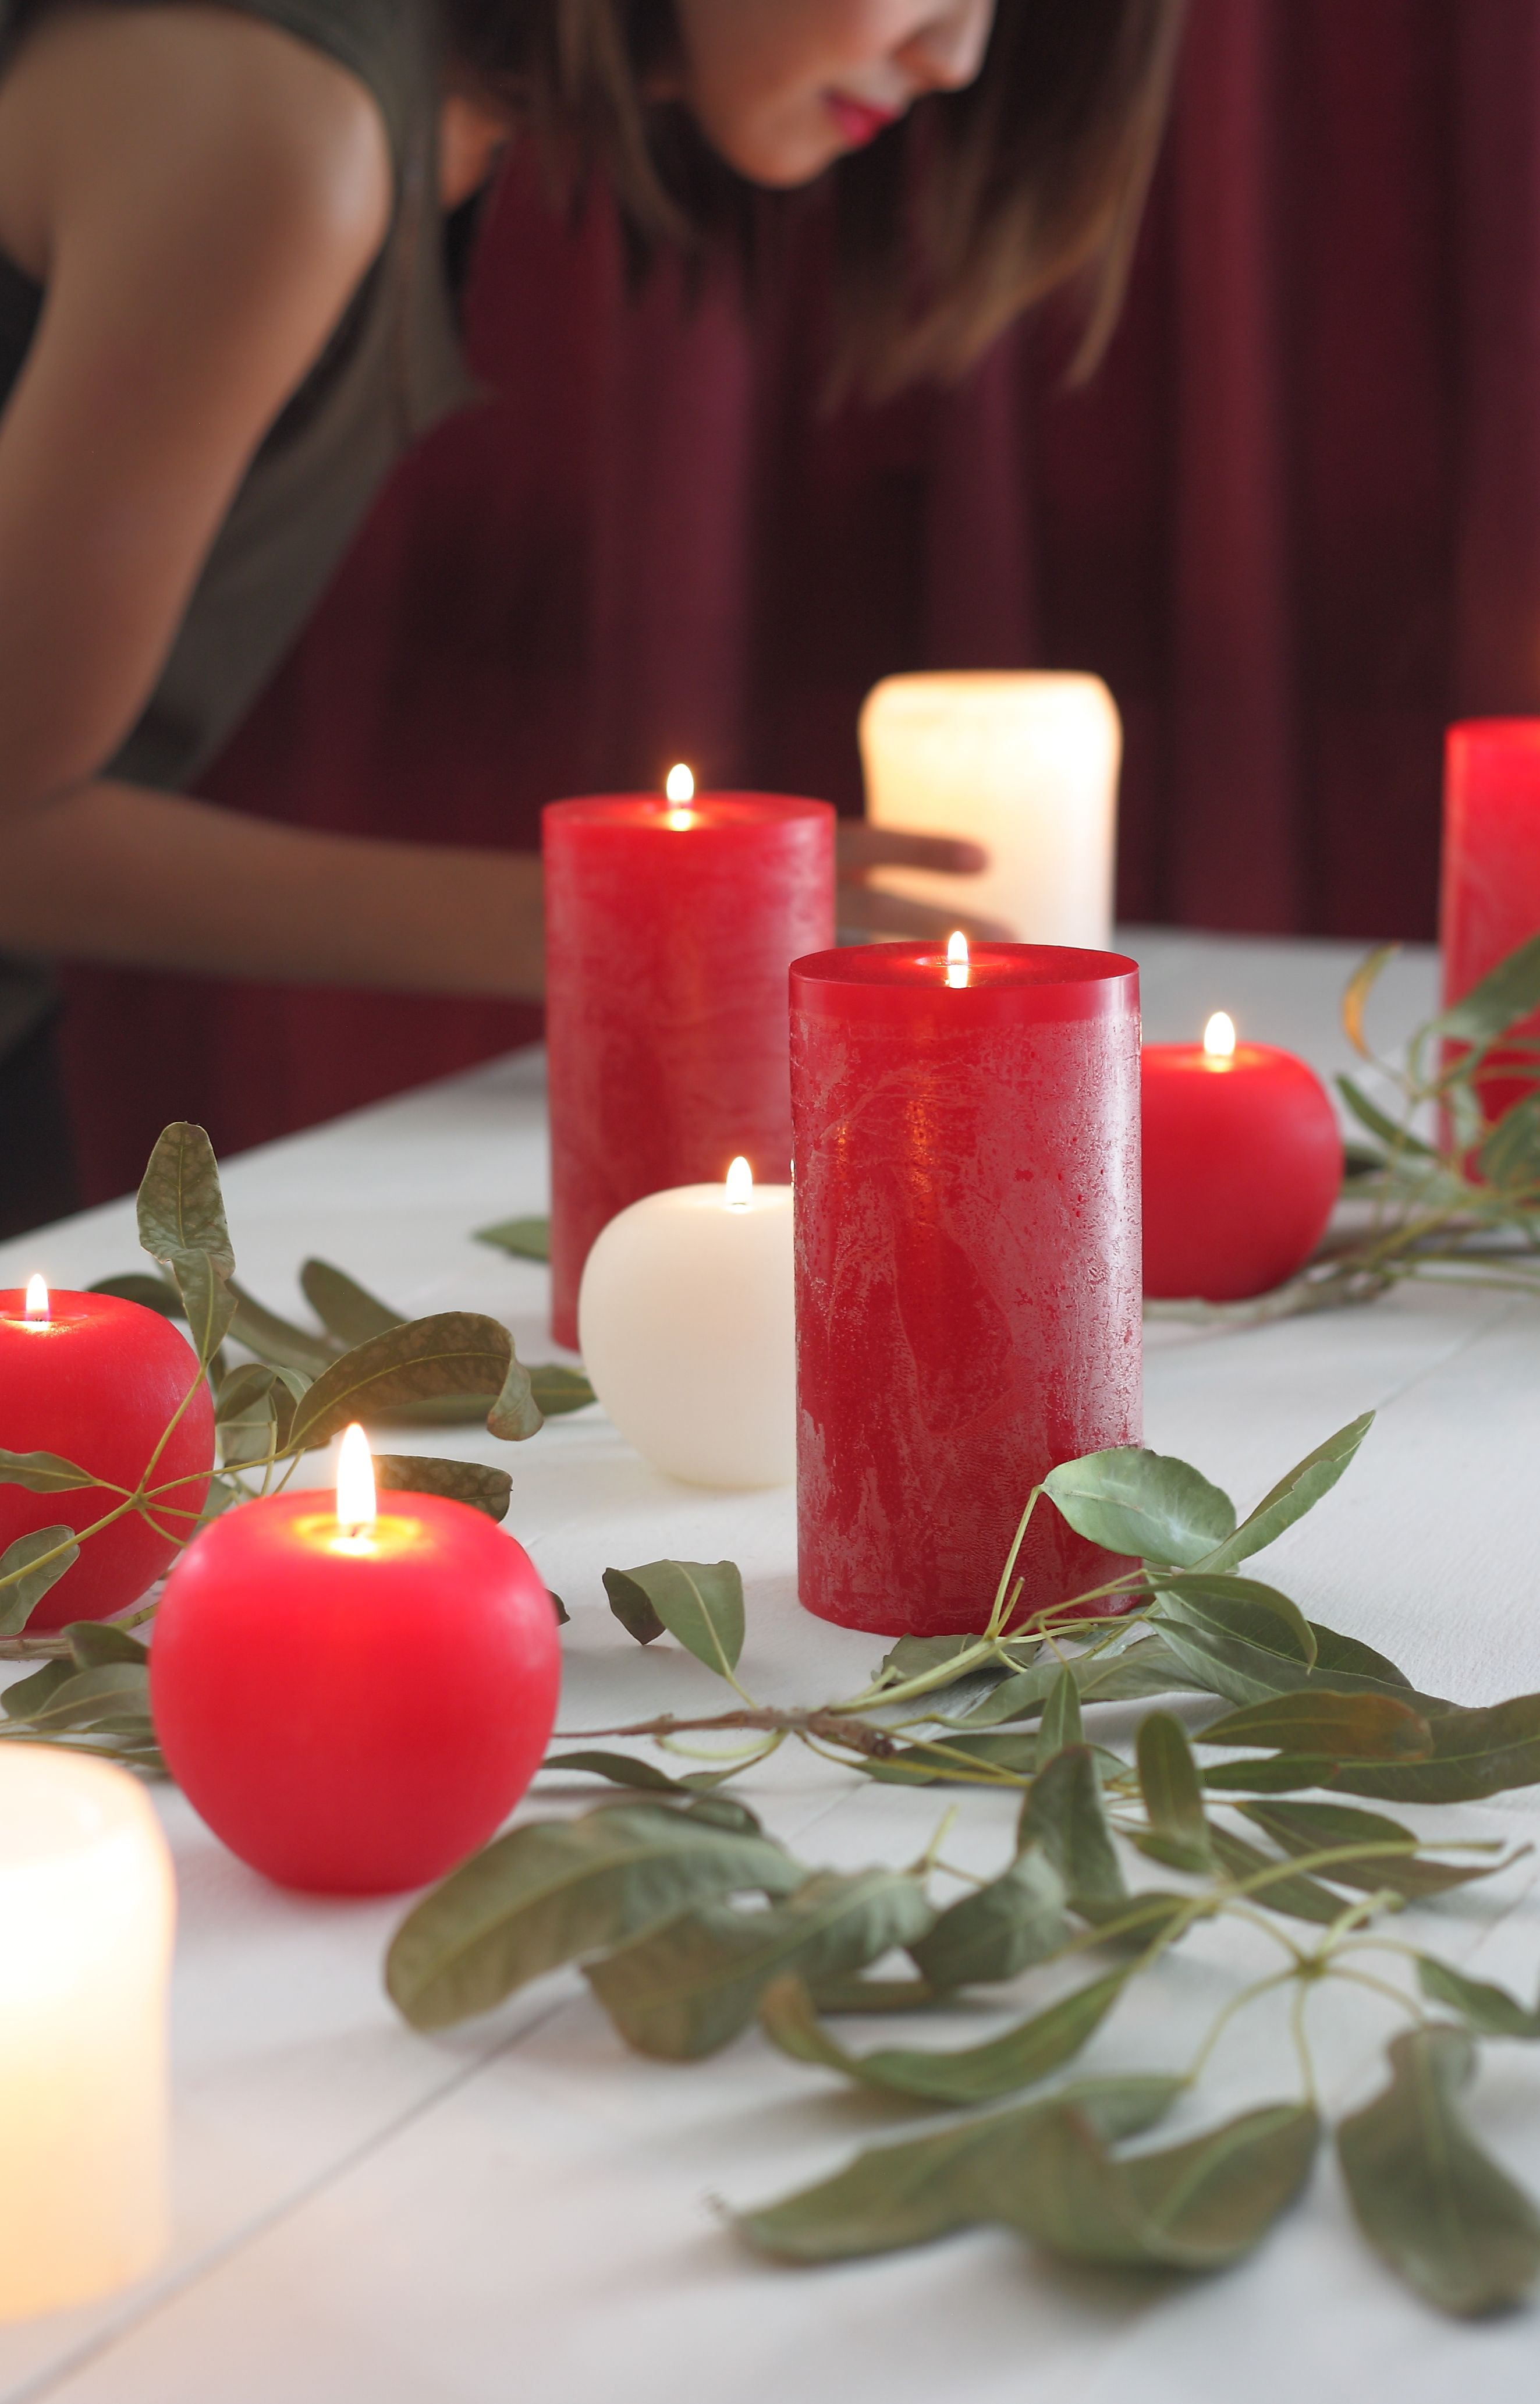 Our Timber Candles In Crb Mw Shown Along With Our Brushed Apple Candles In Red Wh Apple Candles Candles Holiday Home Decor